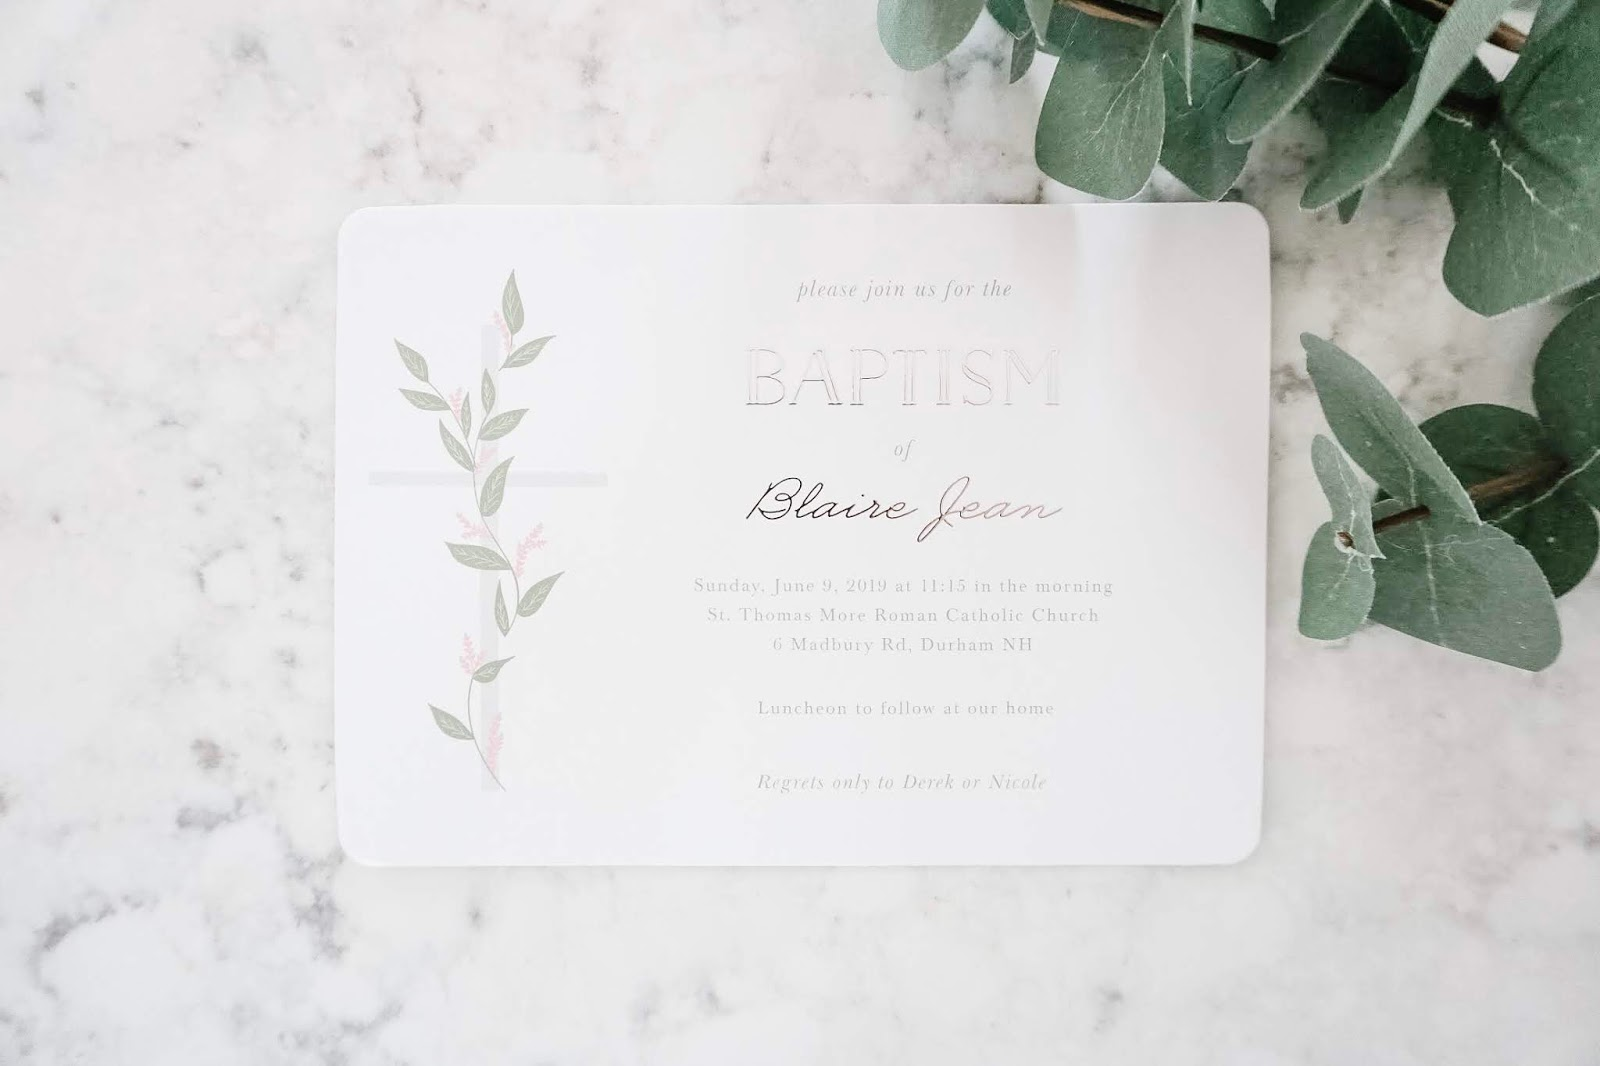 Baptism Invitations with Basic Invite